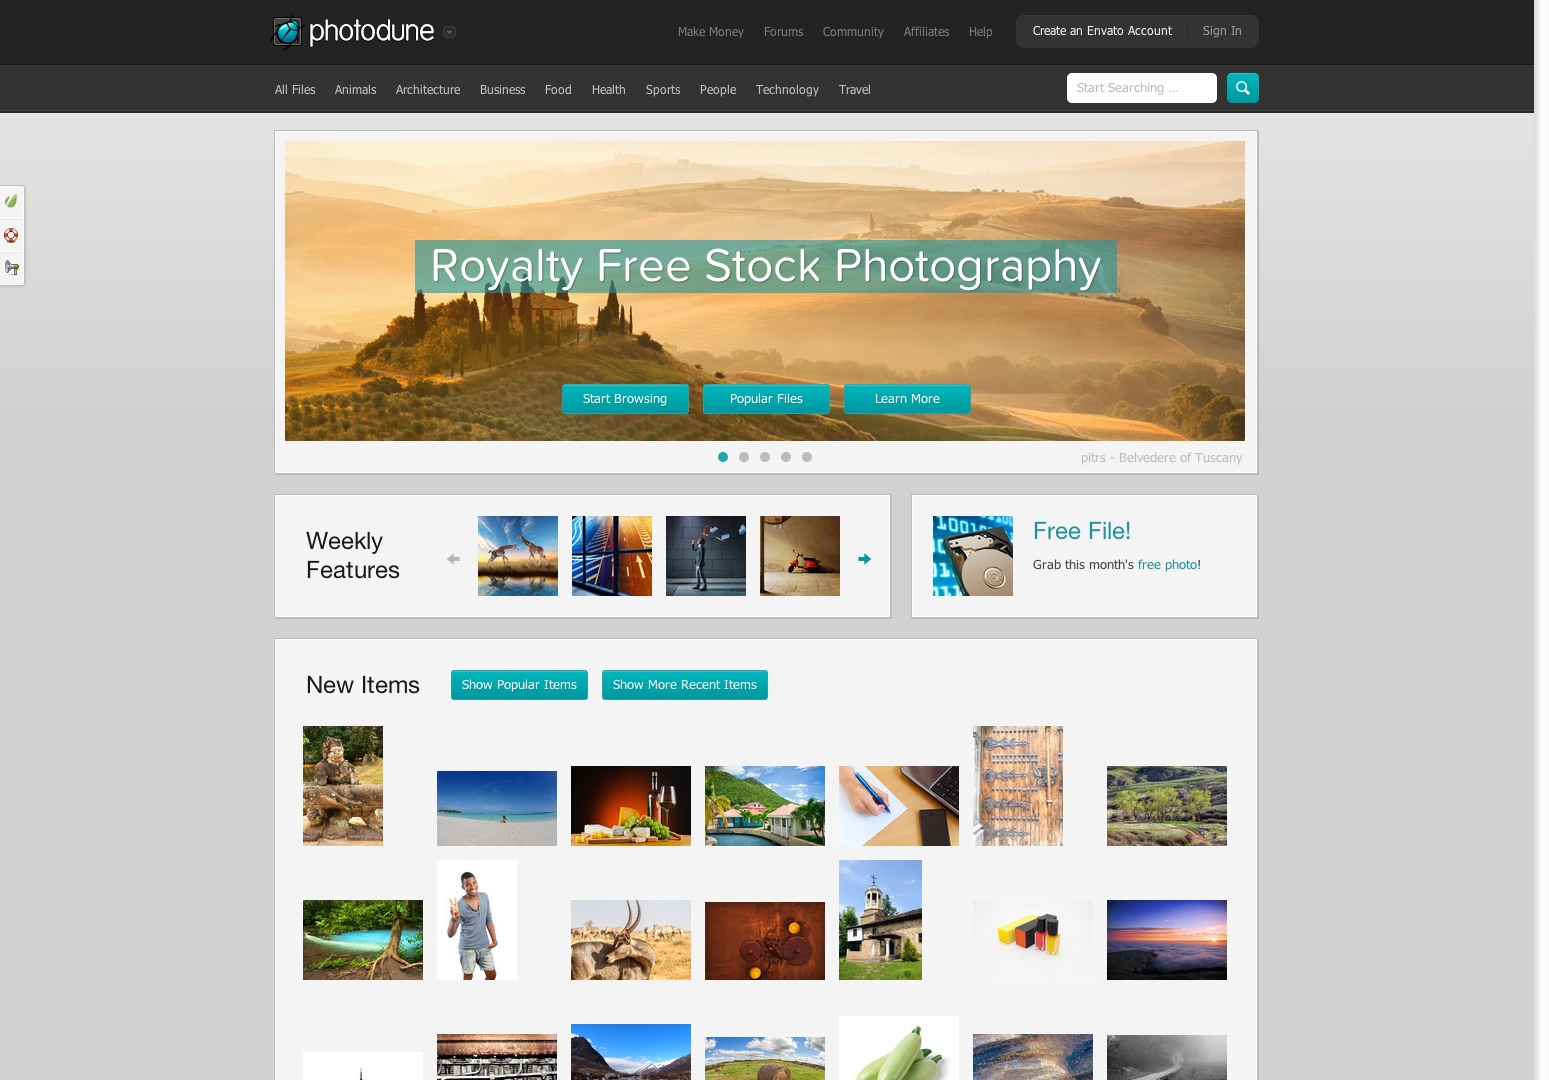 High Quality Royalty-Free Stock Photography From $1 - Stock Photo | PhotoDune